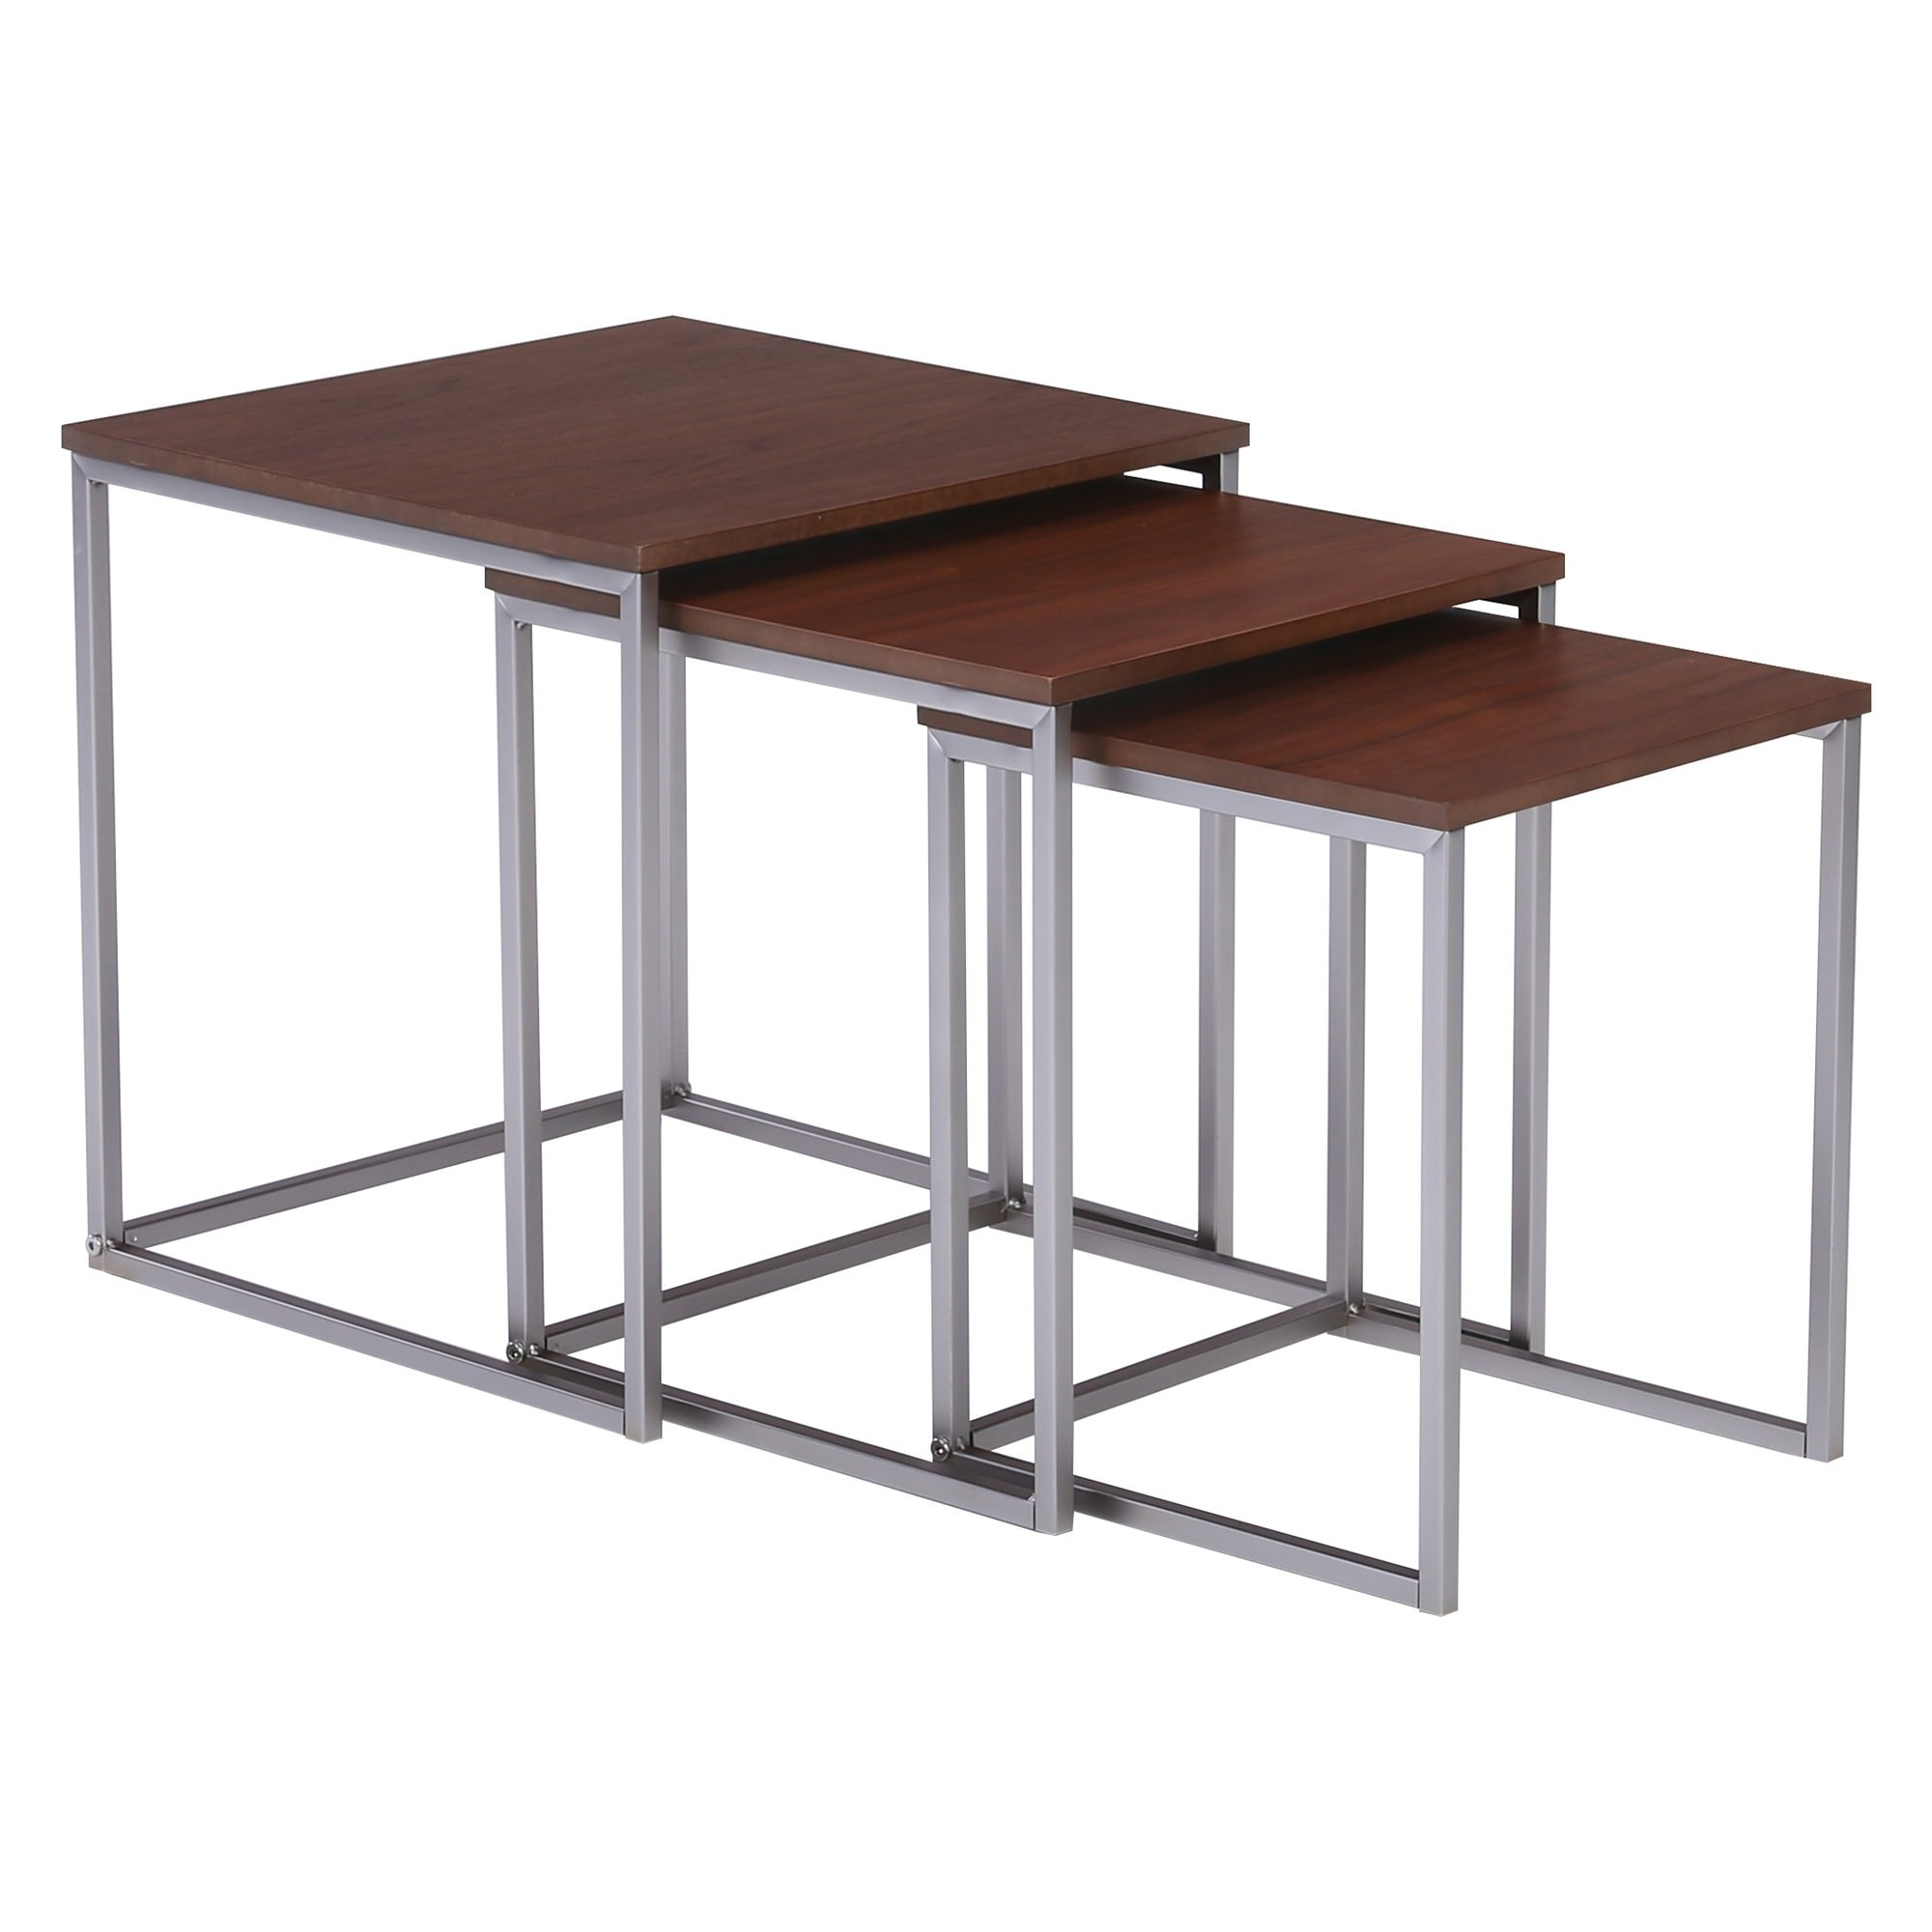 Melor 3 Piece Wood Topped Metal Nesting Table Set, Walnut / Silver